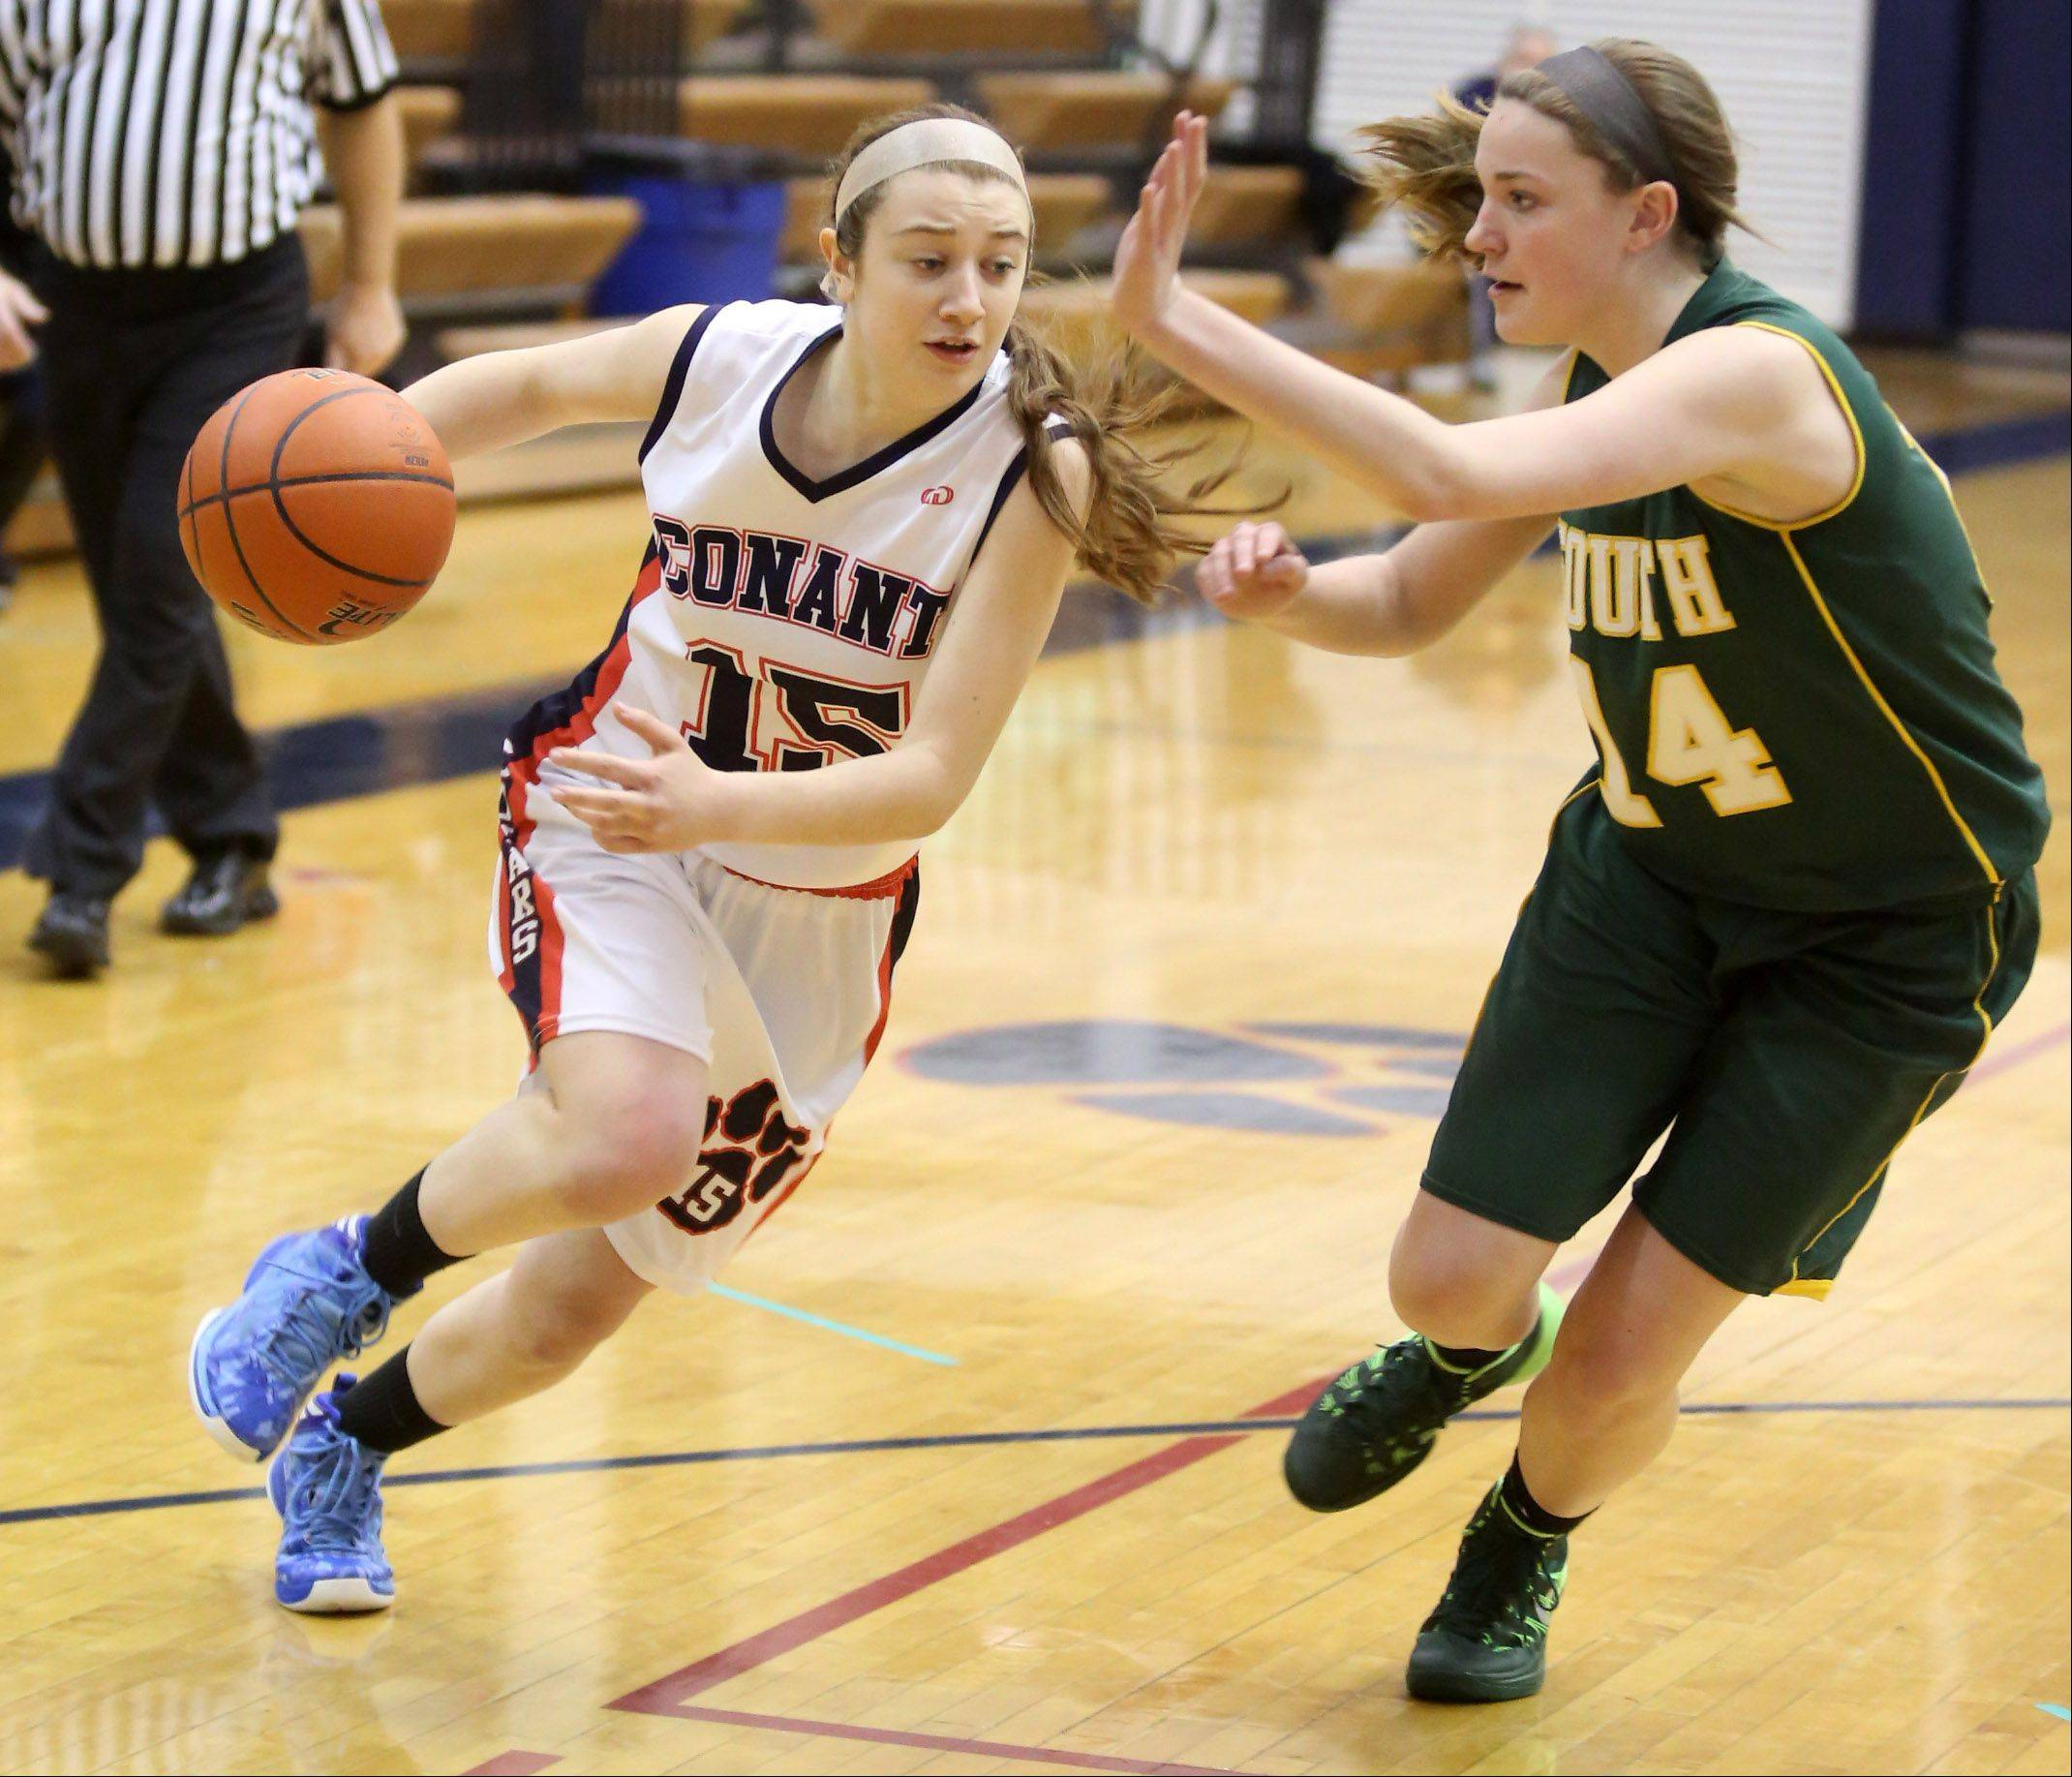 Conant's Lexi Zades pushes the ball up court against Crystal Lake South defender Chanel Fanter at Conant on Saturday.